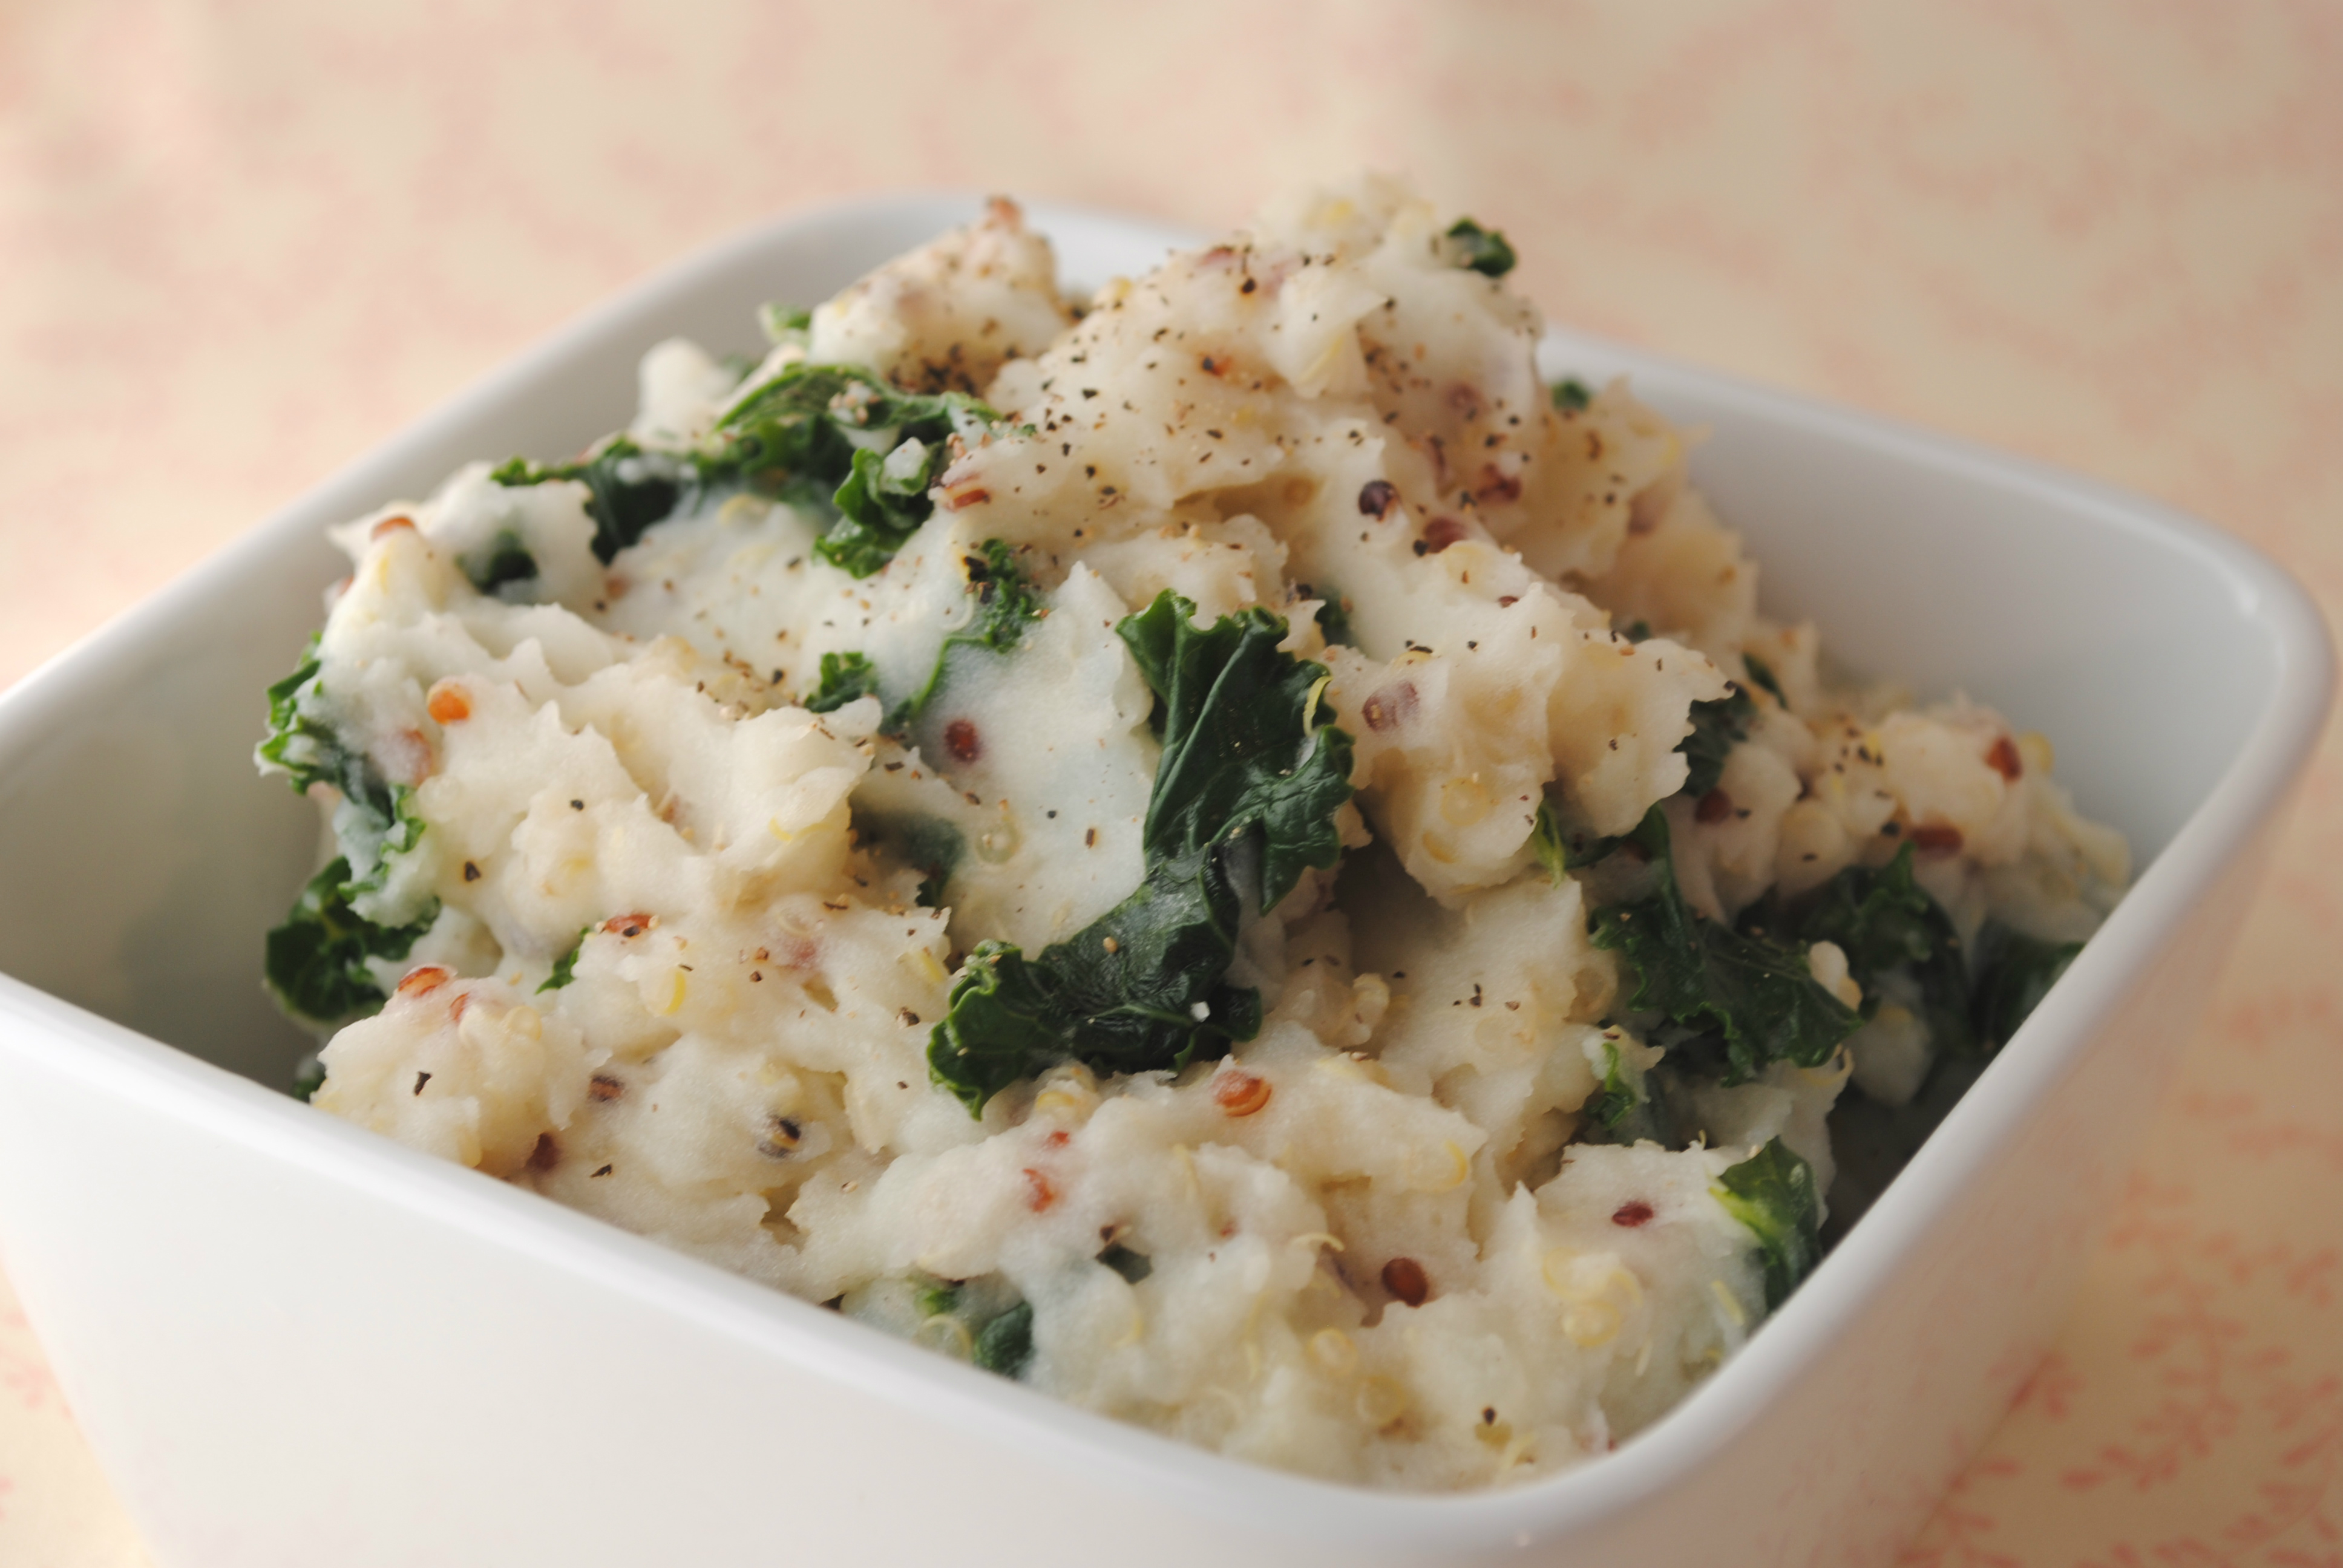 Mashed Potatoes with Kale and Quinoa